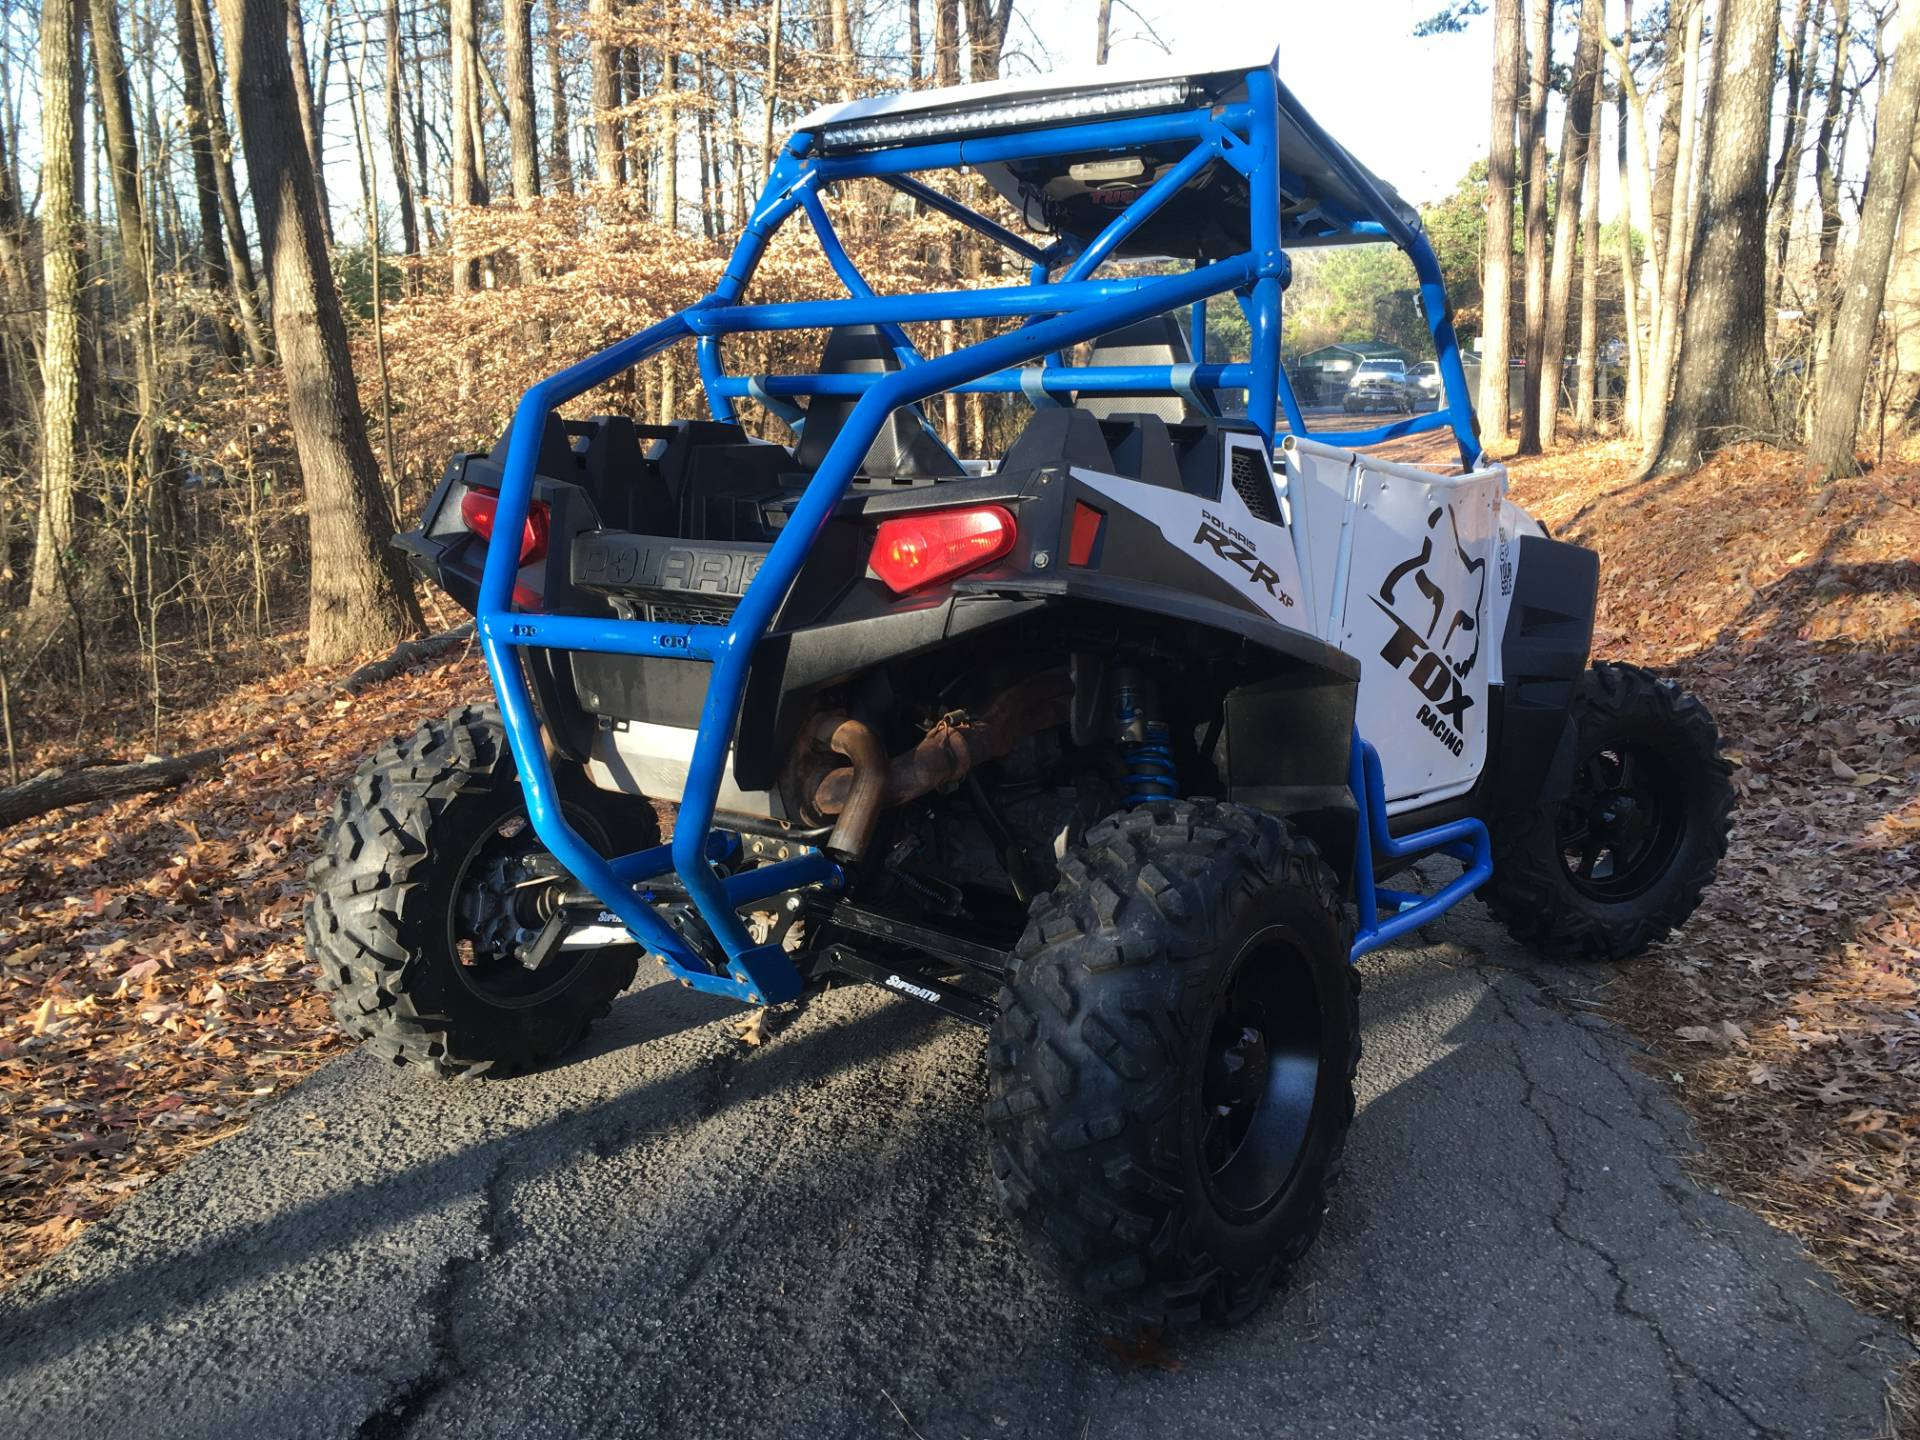 2012 POLARIS RZR 900 XP in Woodstock, Georgia - Photo 4